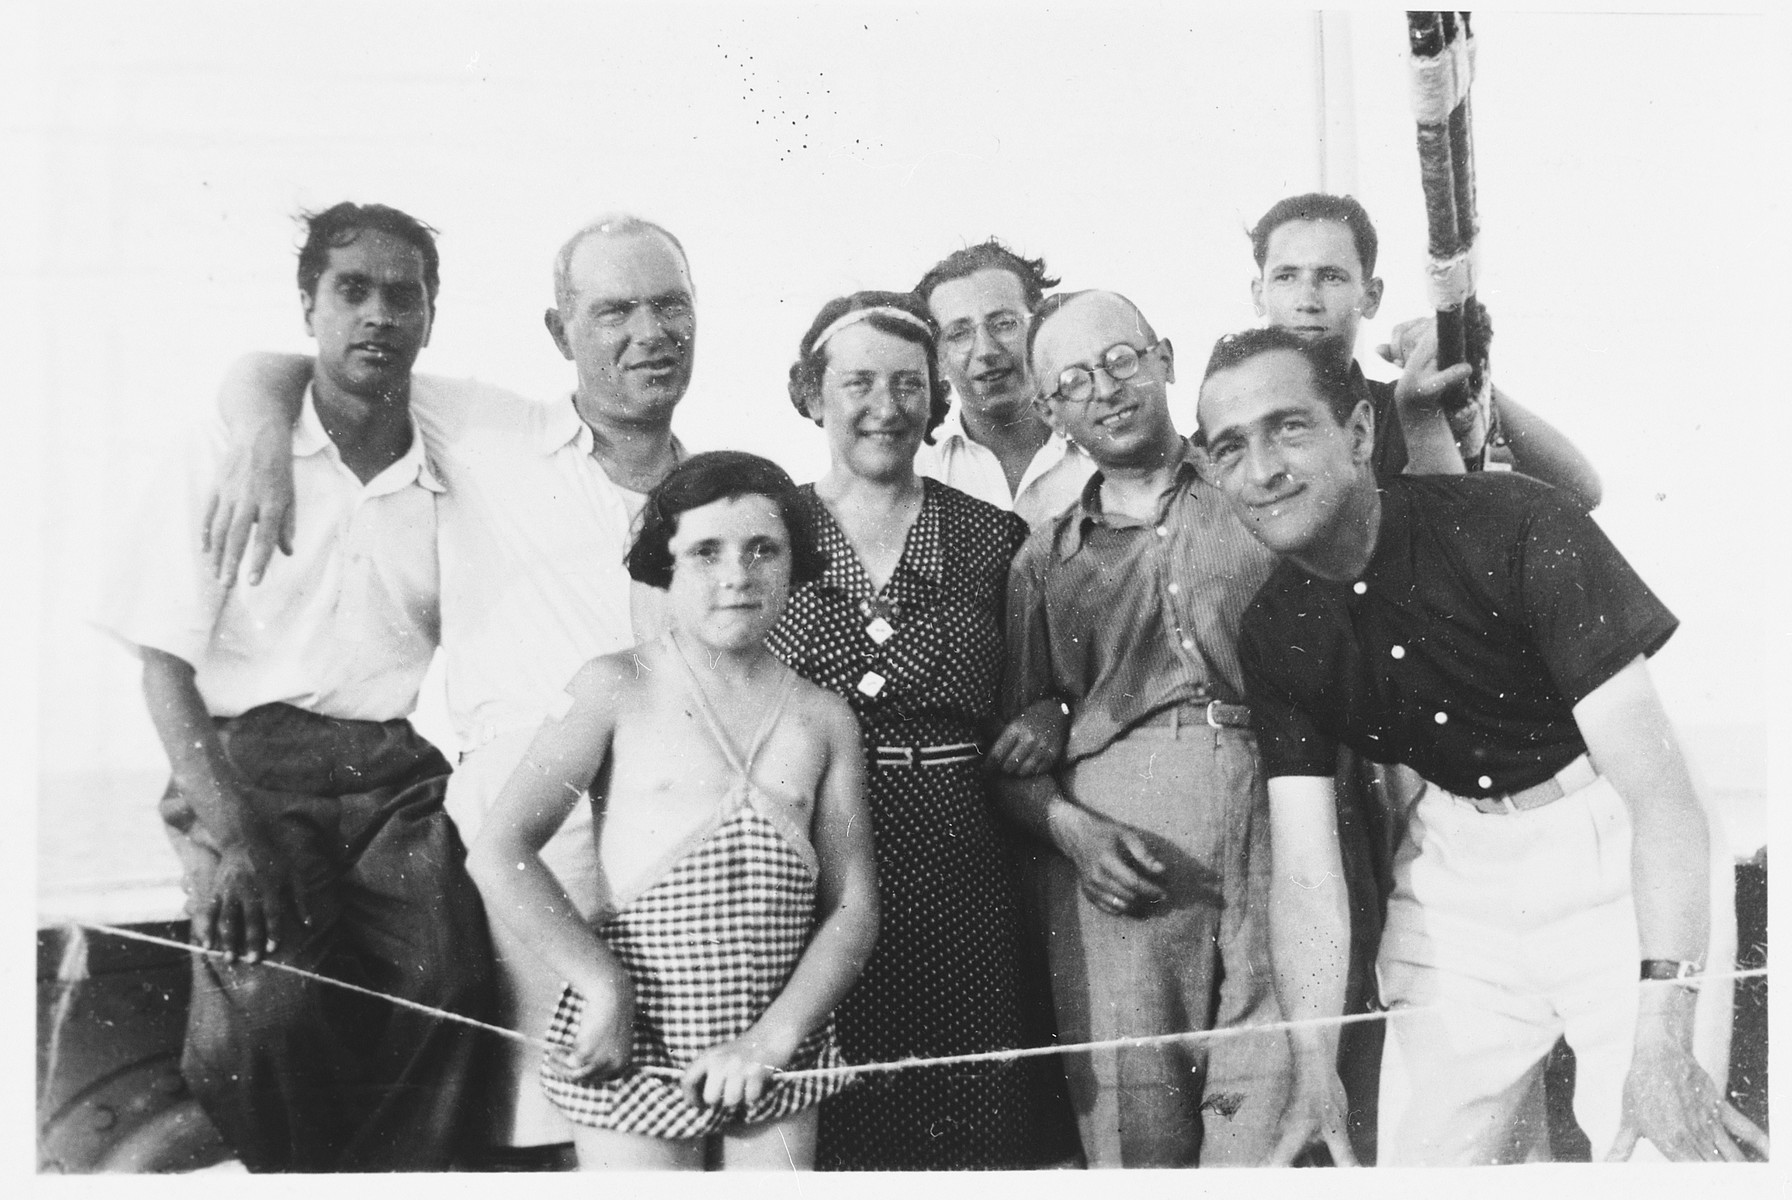 The Matzdorff family and other Jewish refugees pose on the deck of the S.S. Victoria on route to Shanghai.